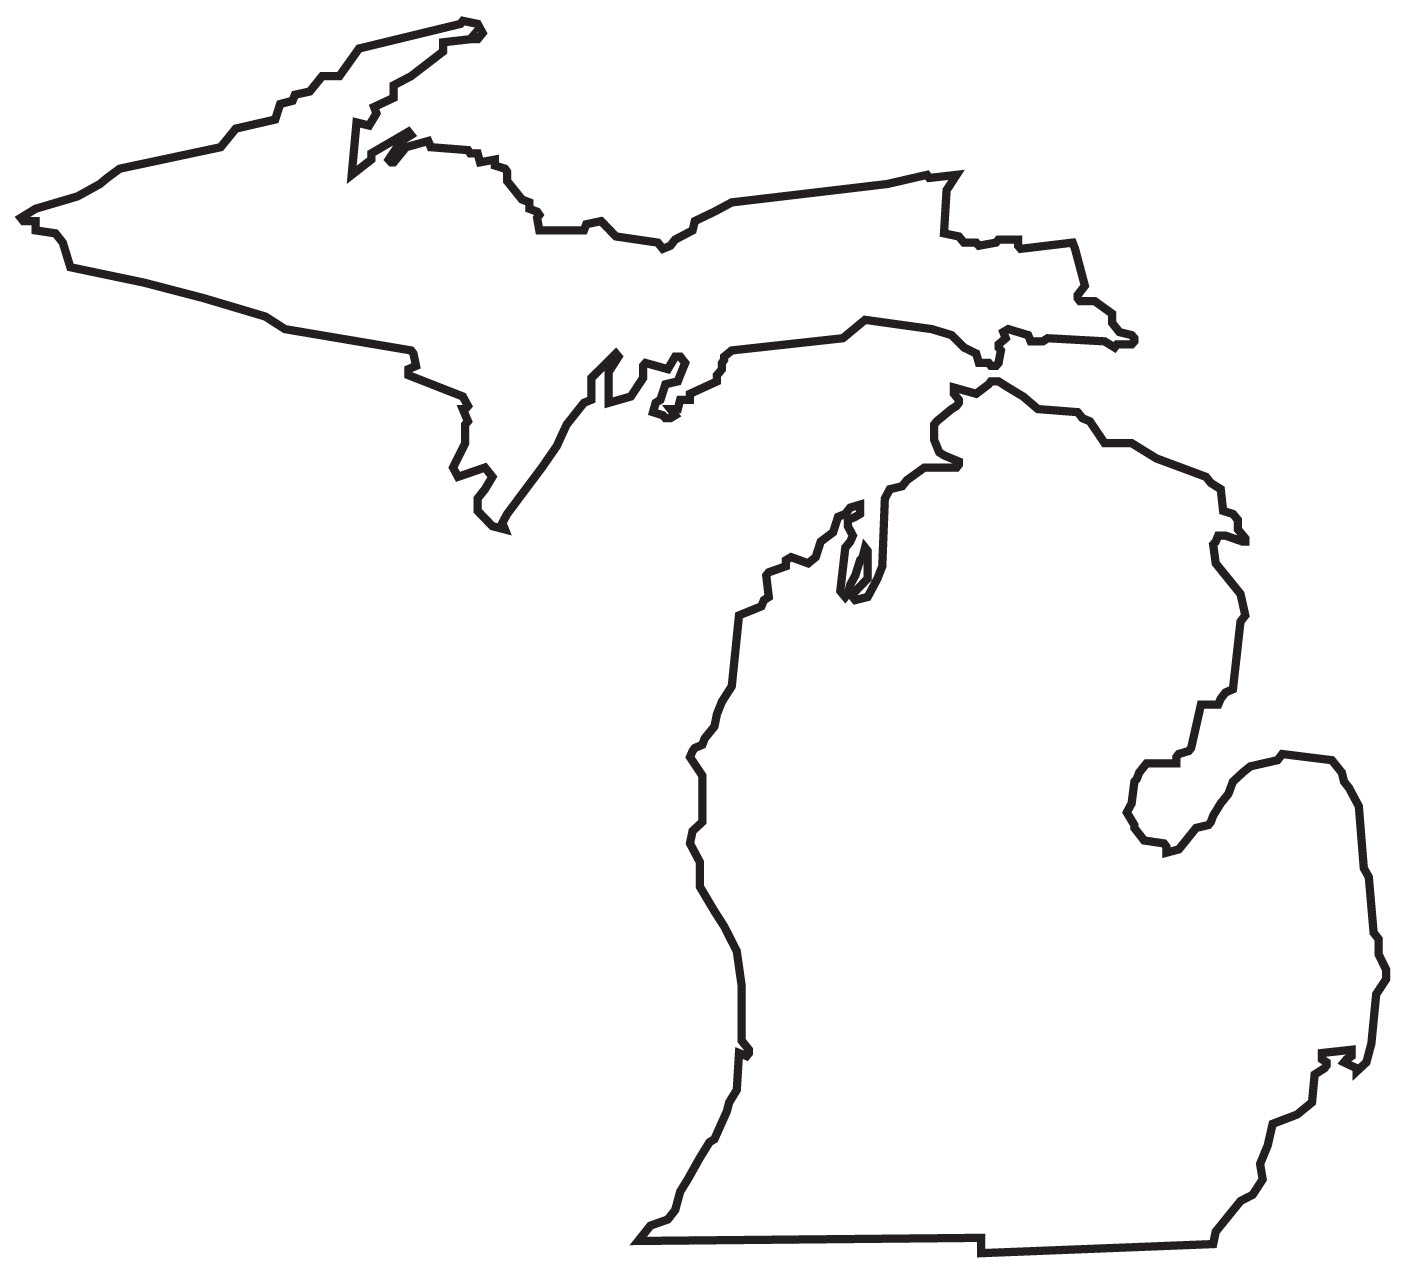 Nutrition Consulting From Payback Michig-Nutrition Consulting From Payback Michigan-13